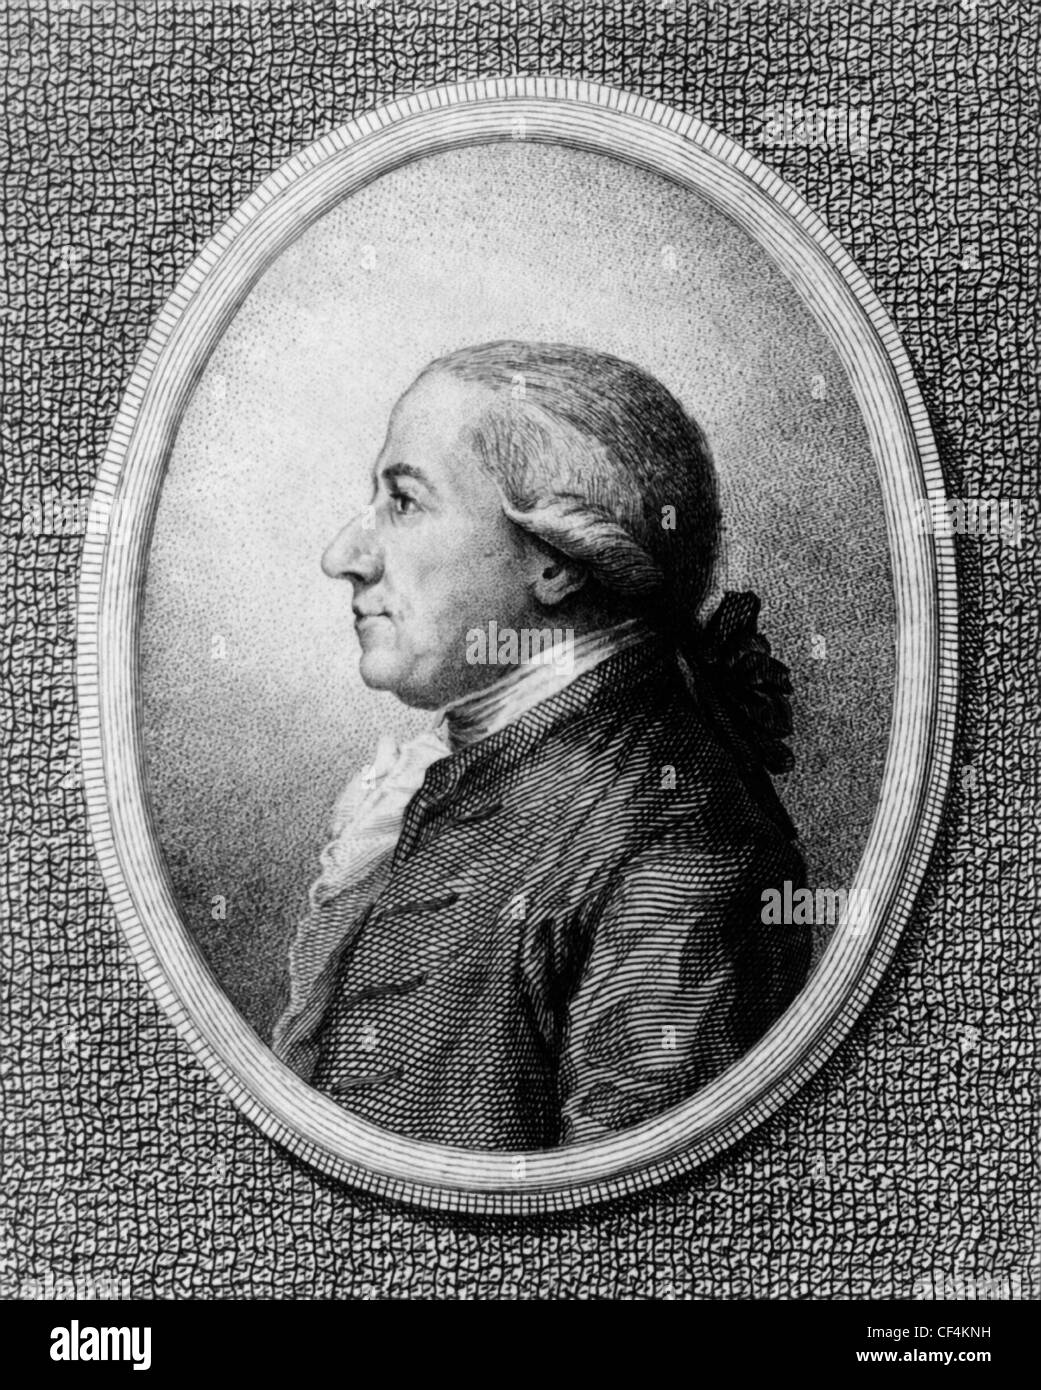 Vintage portrait print of American statesman Henry Laurens (1724 - 1792) - President of the Second Continental Congress - Stock Image